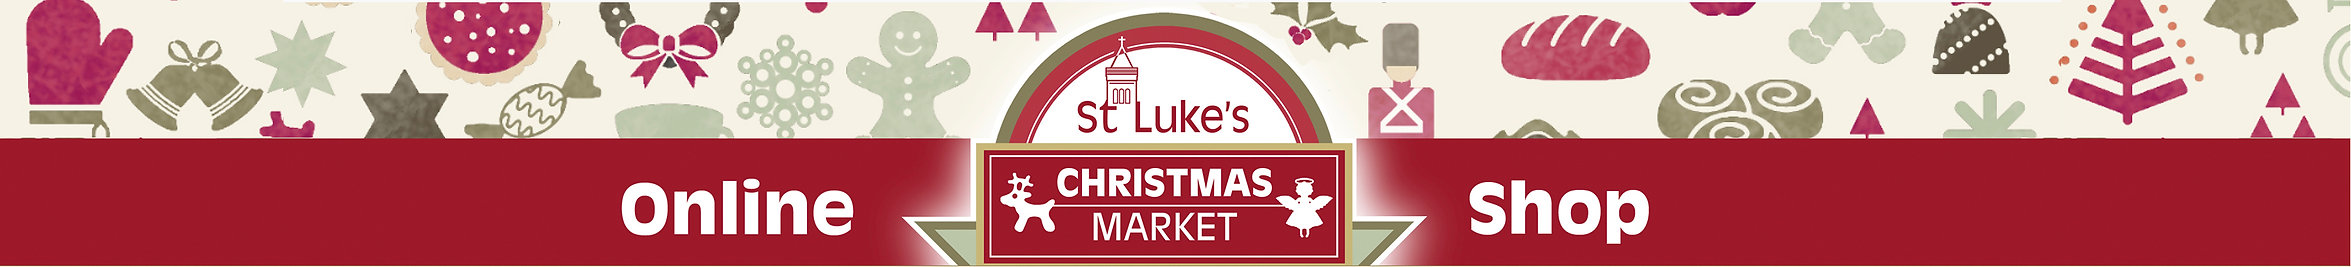 St Lukes Shop Header 2.jpg